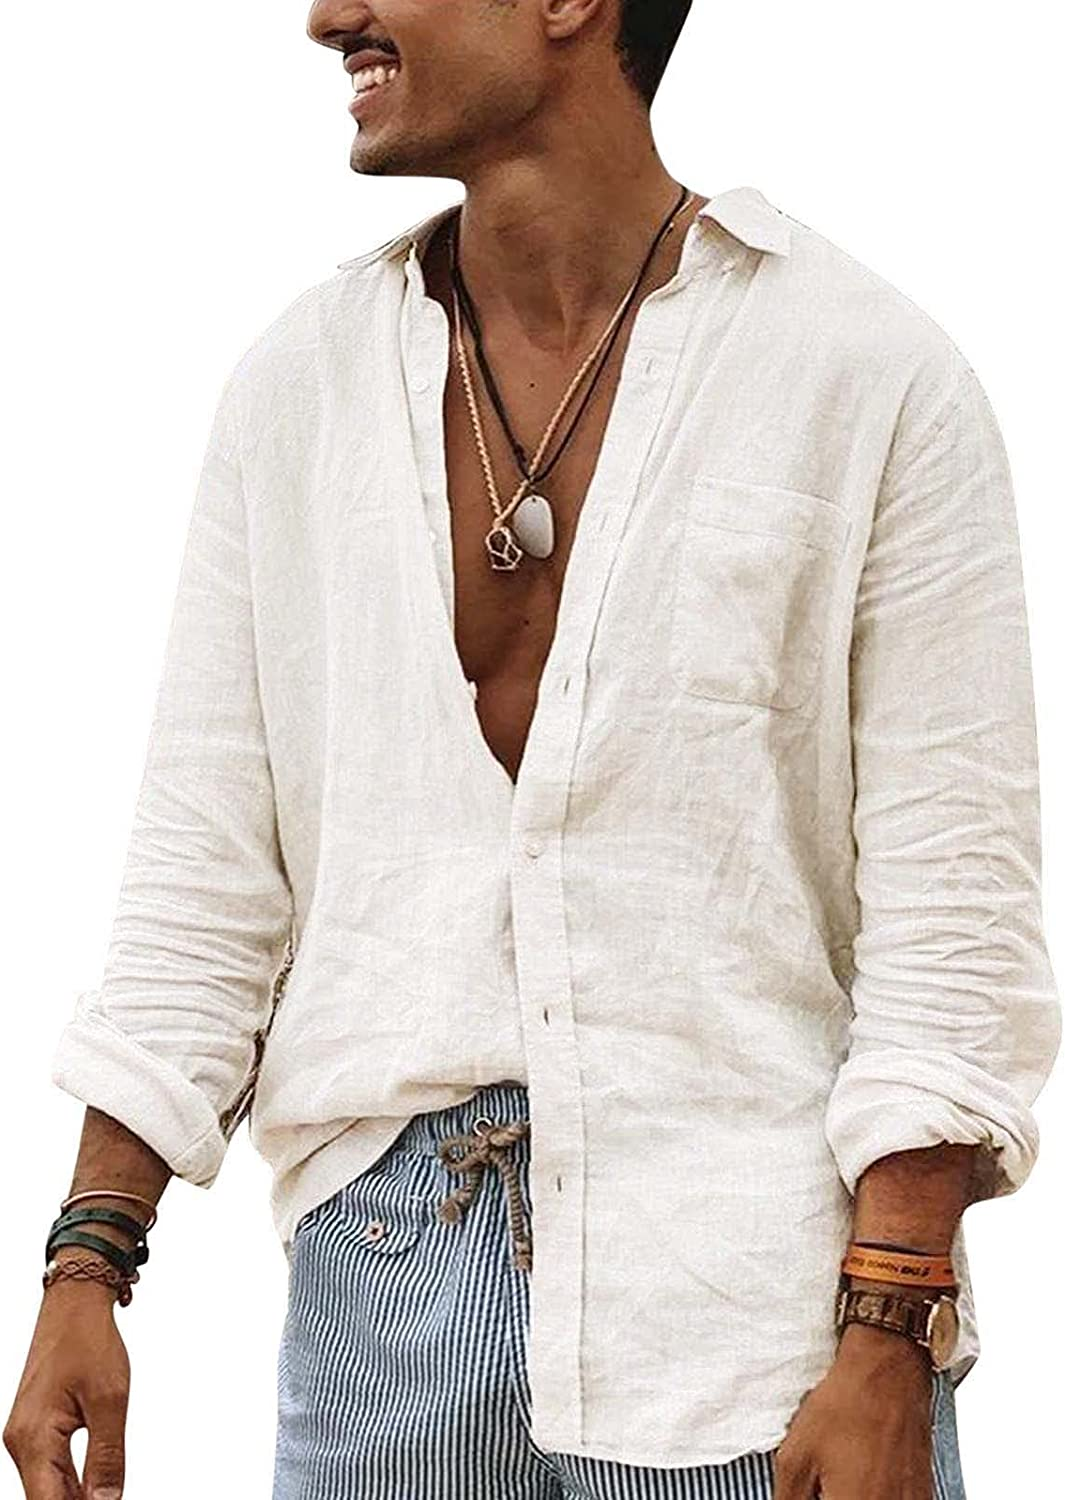 Men's Long Sleeve Baggy Linen Henley Shirts Fashion Casual V Neck Button Down Hippie T Shirts Beach Tops Big and Tall